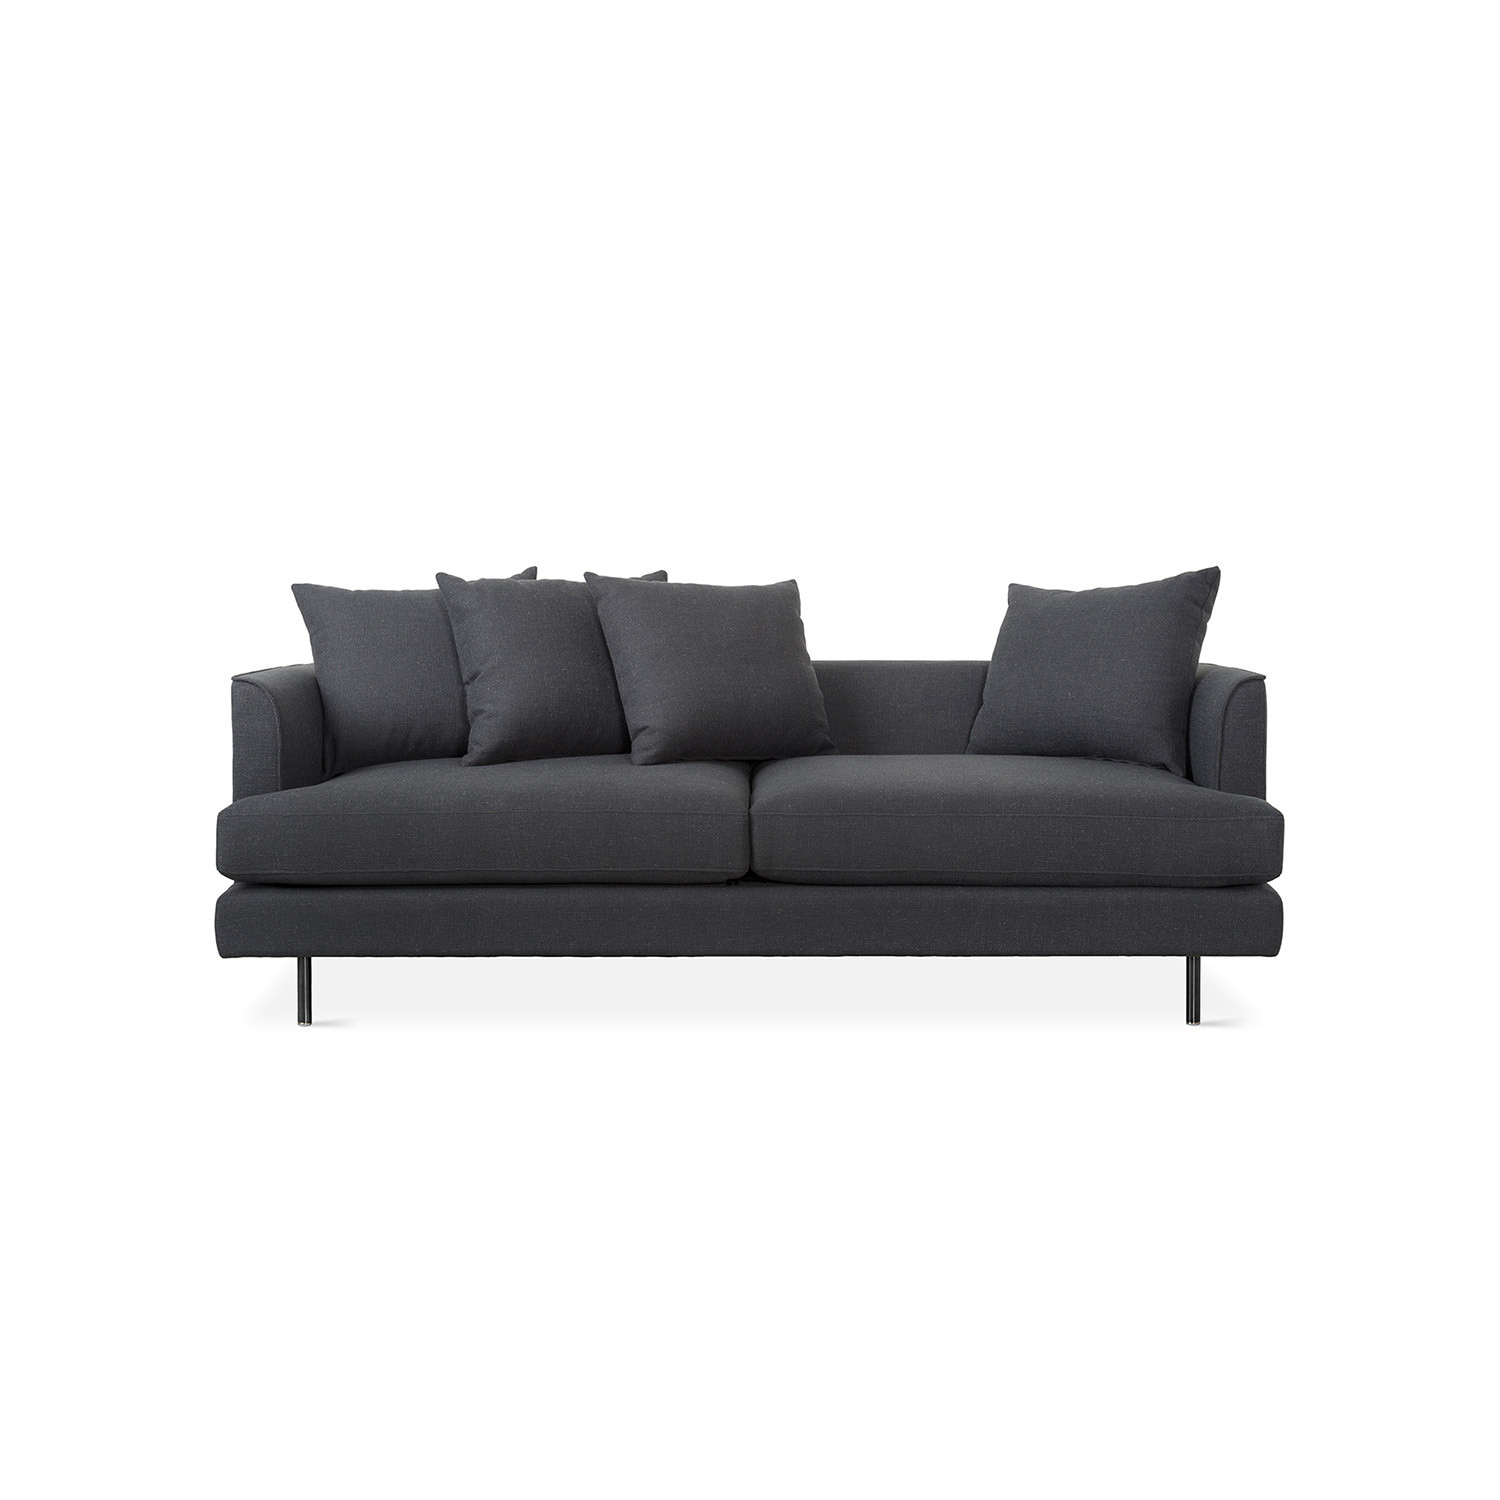 Margot Sofa DISC Oxford Quartz Black Finish Gus Modern